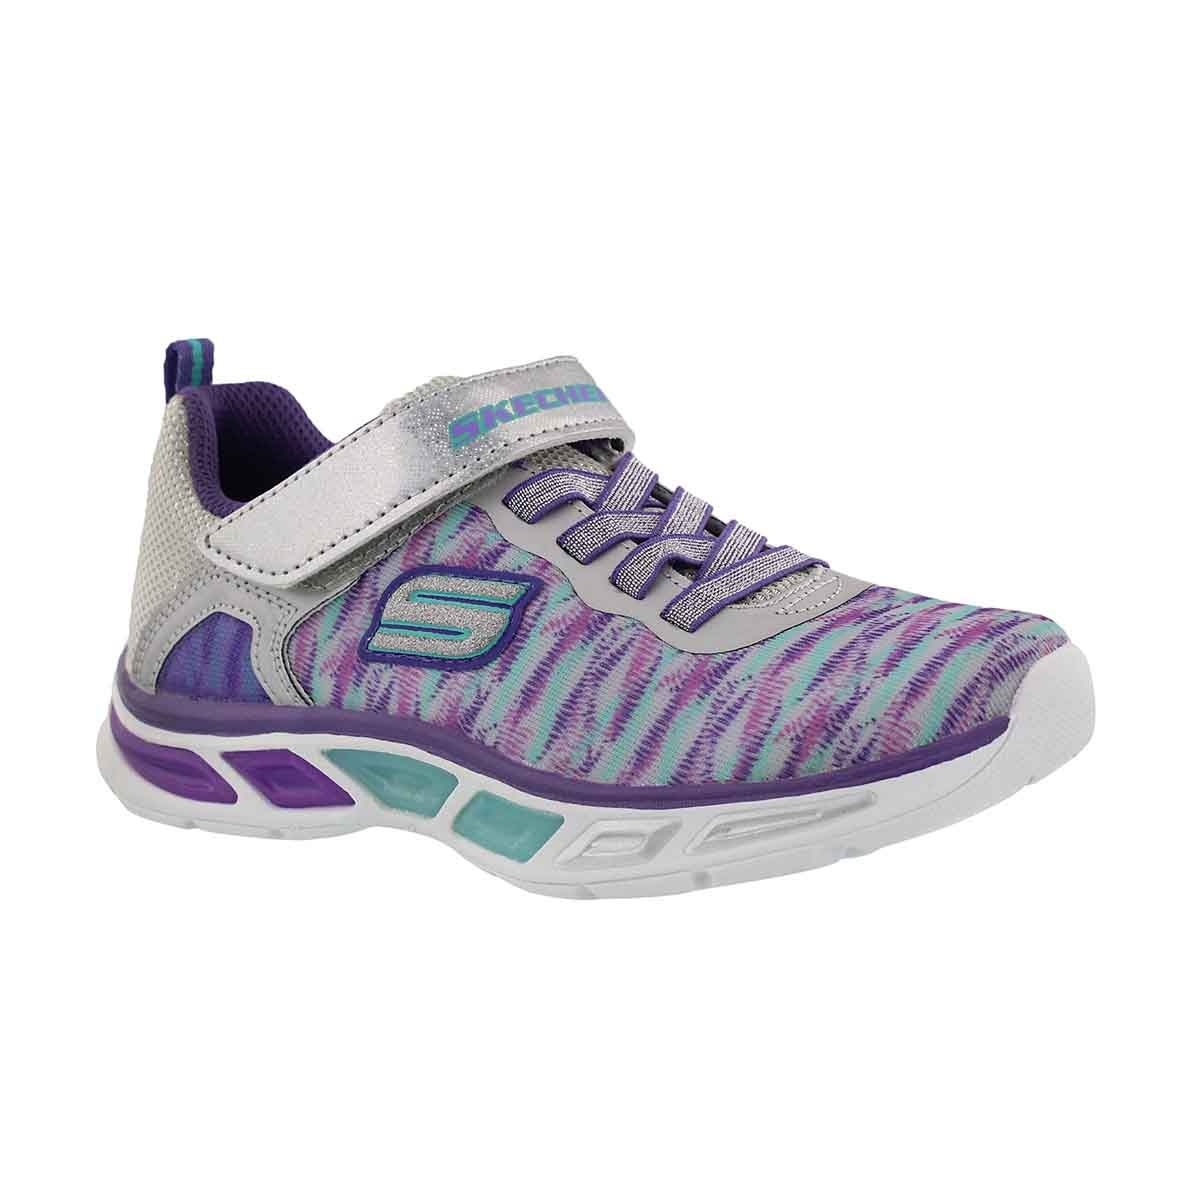 Girls' LITEBEAMS silver/purple light up sneakers